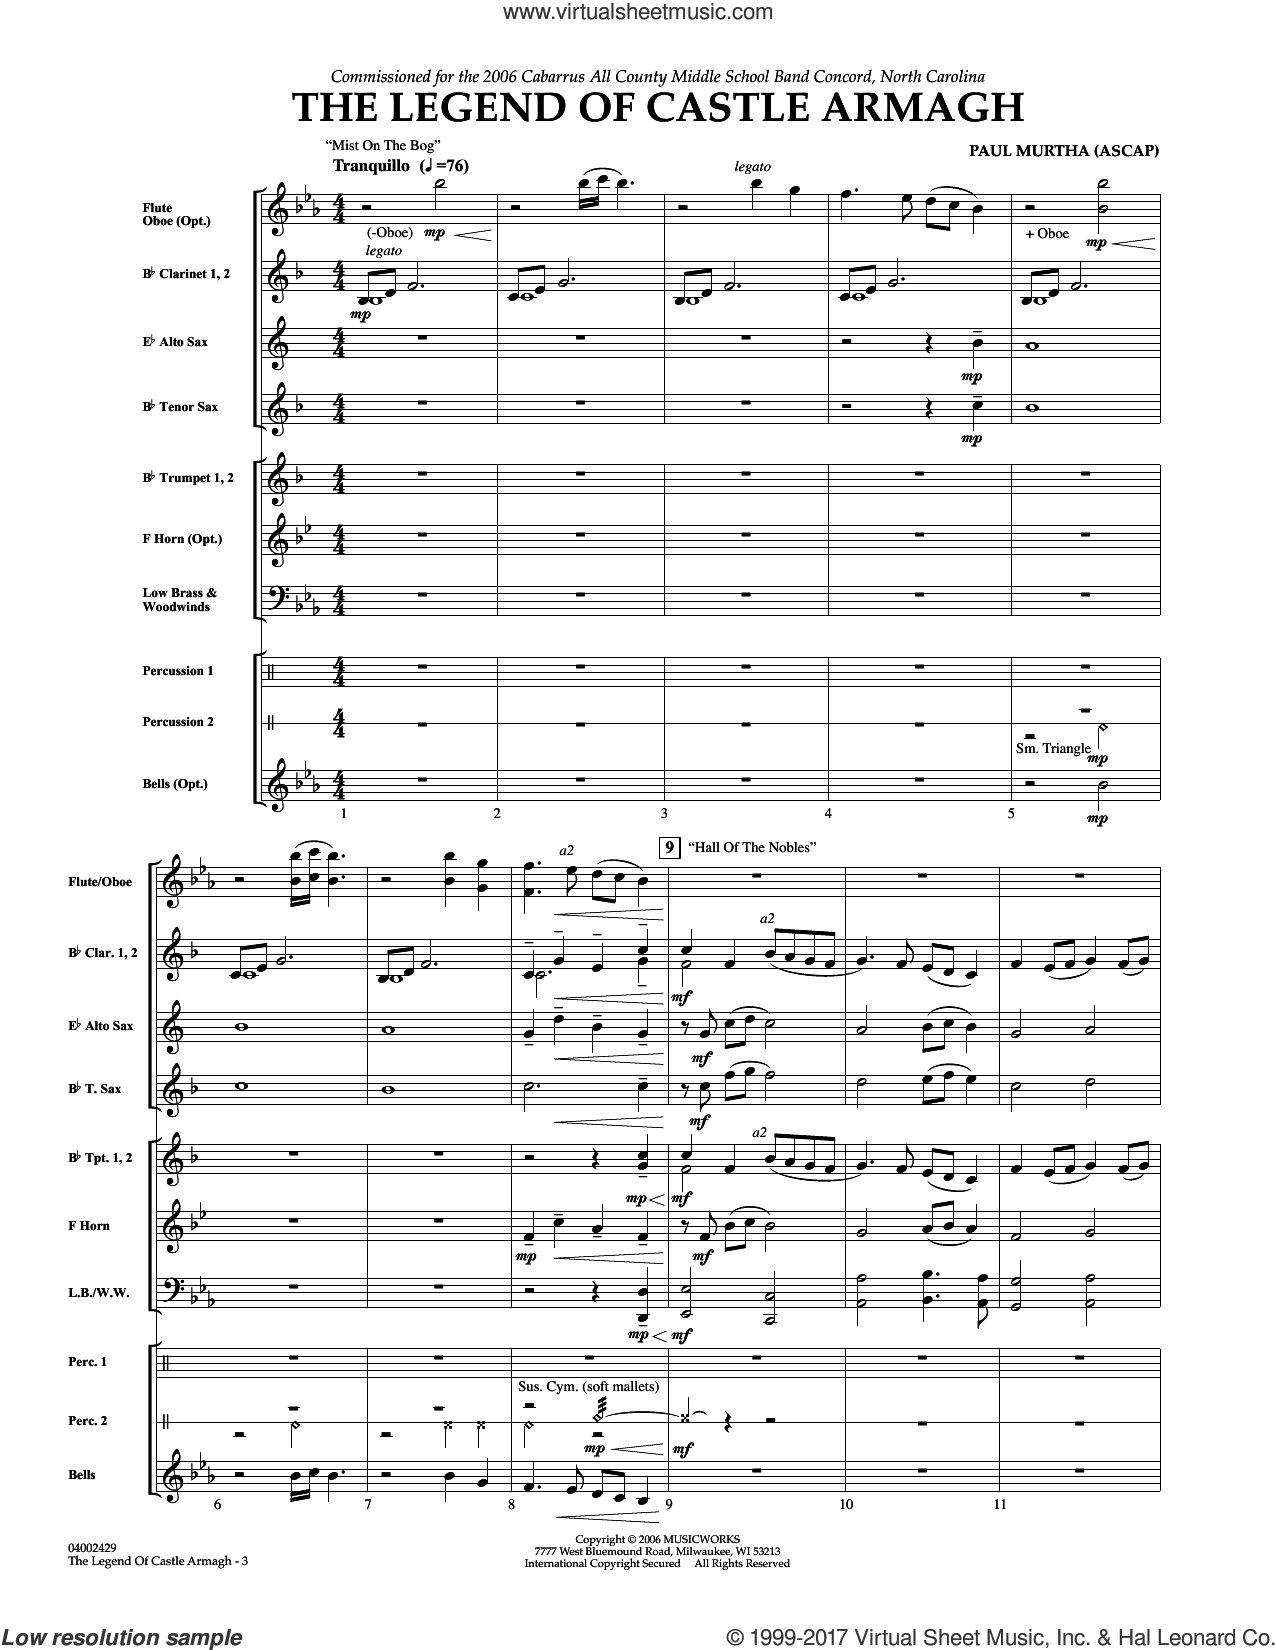 The Legend of Castle Armagh (COMPLETE) sheet music for concert band by Paul Murtha, intermediate skill level